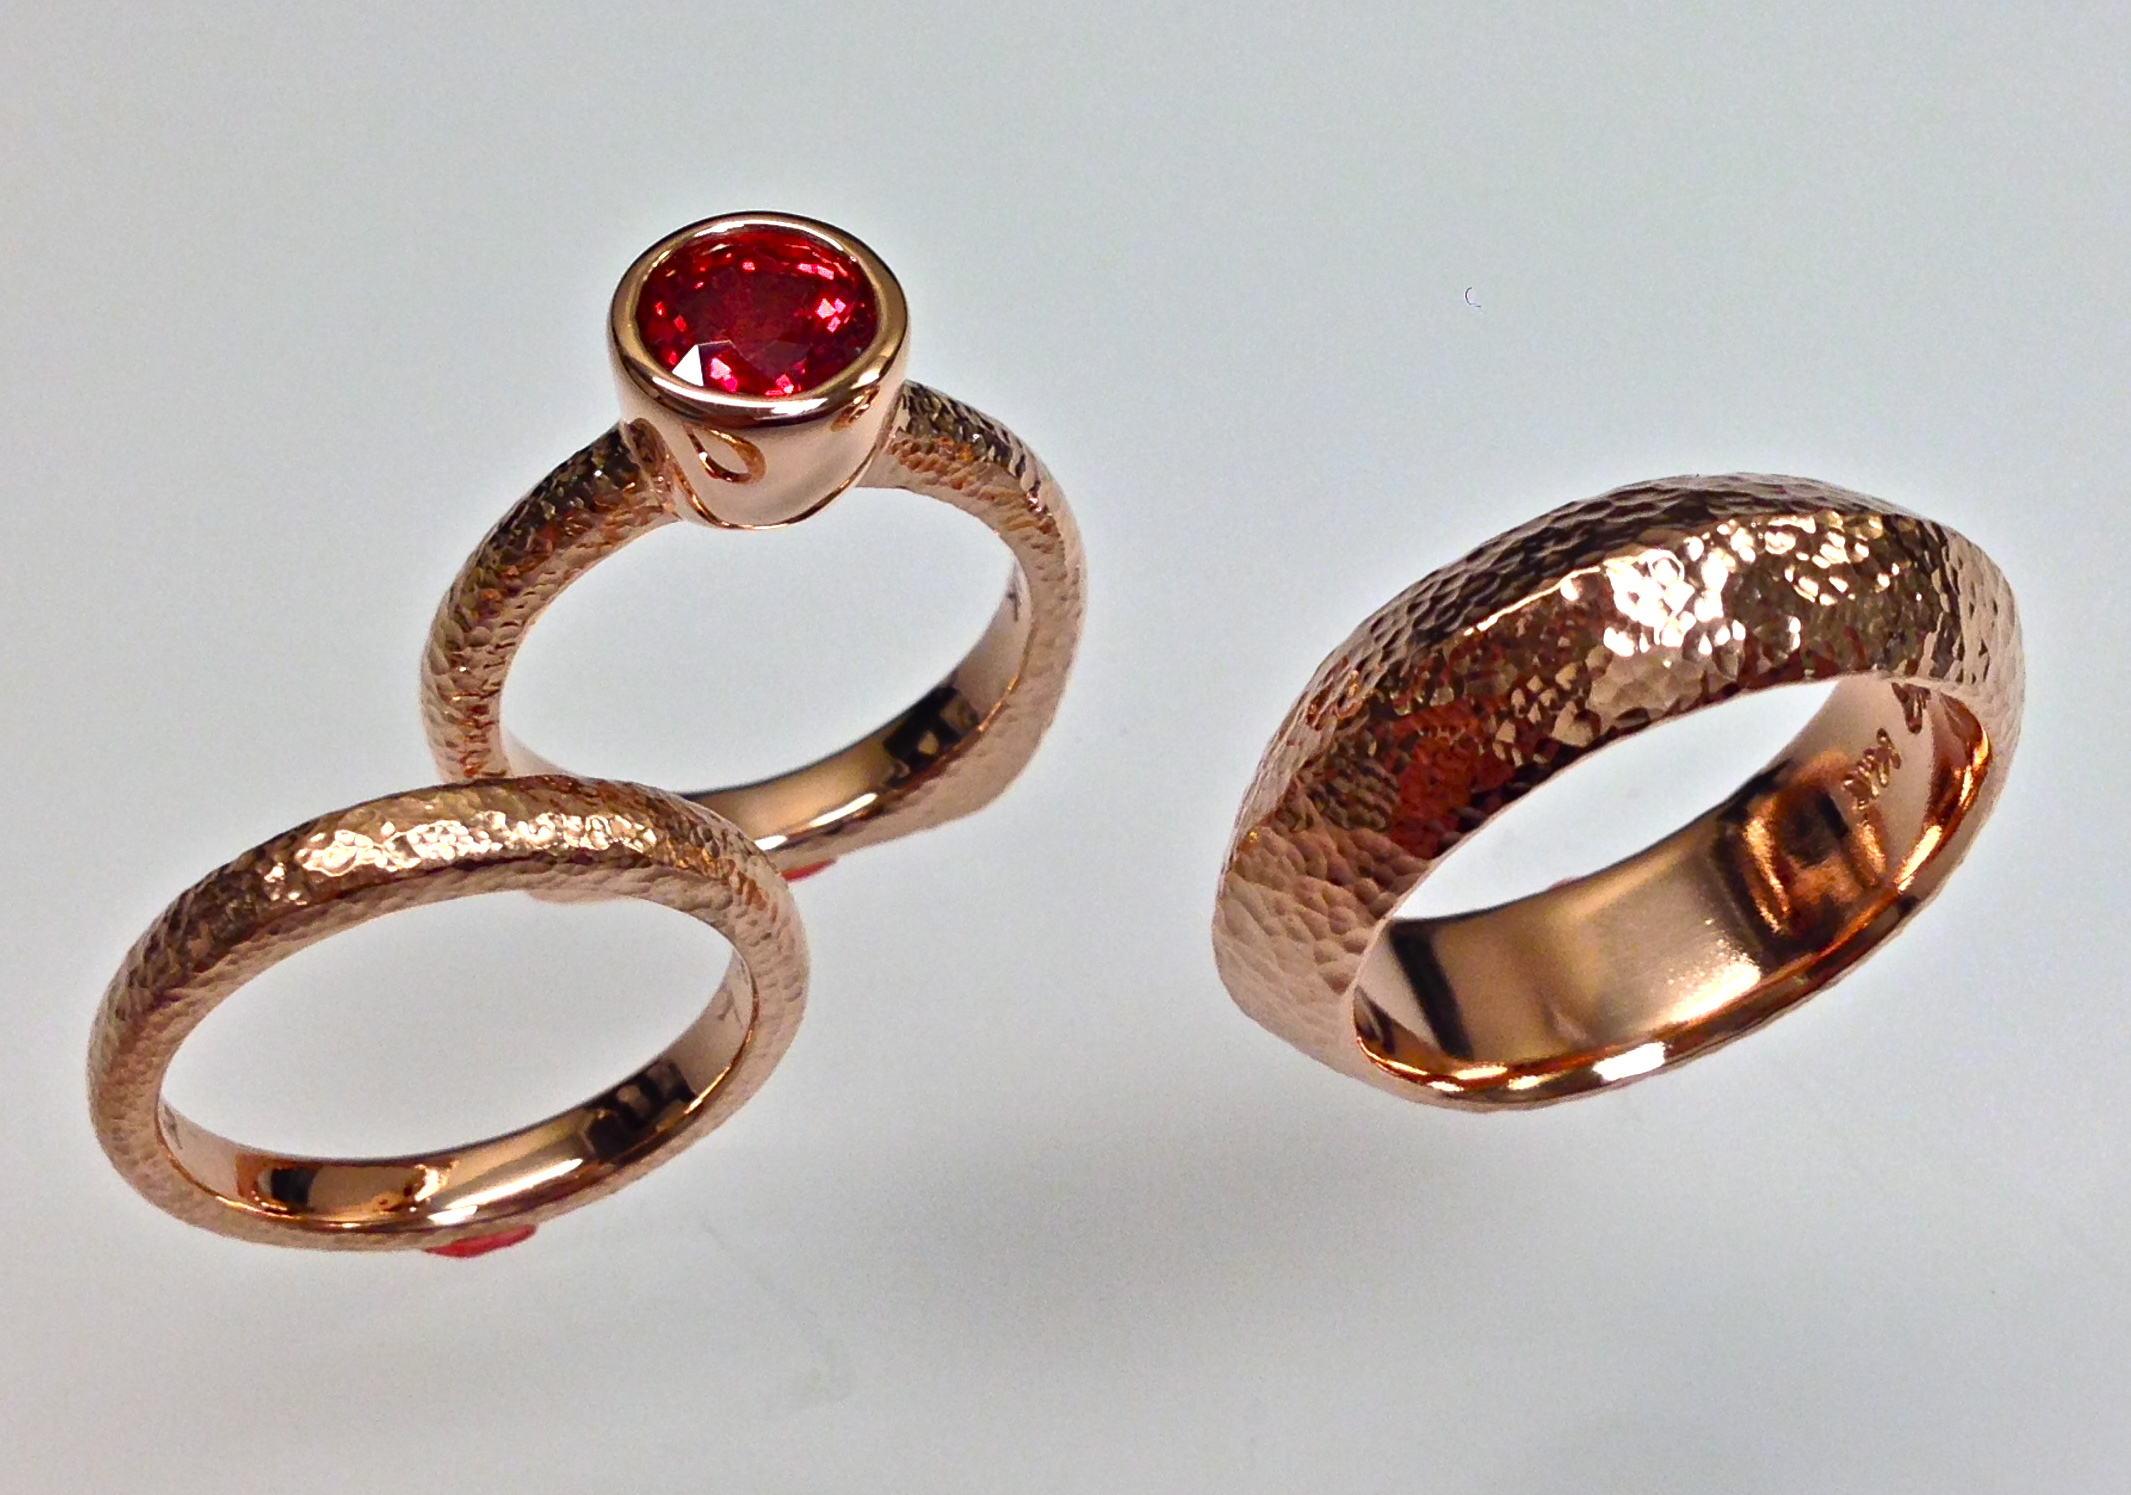 rose-gold-rustic-vintage-wedding-set-craft-revival-jewelry-store-grand-rapids-michigan